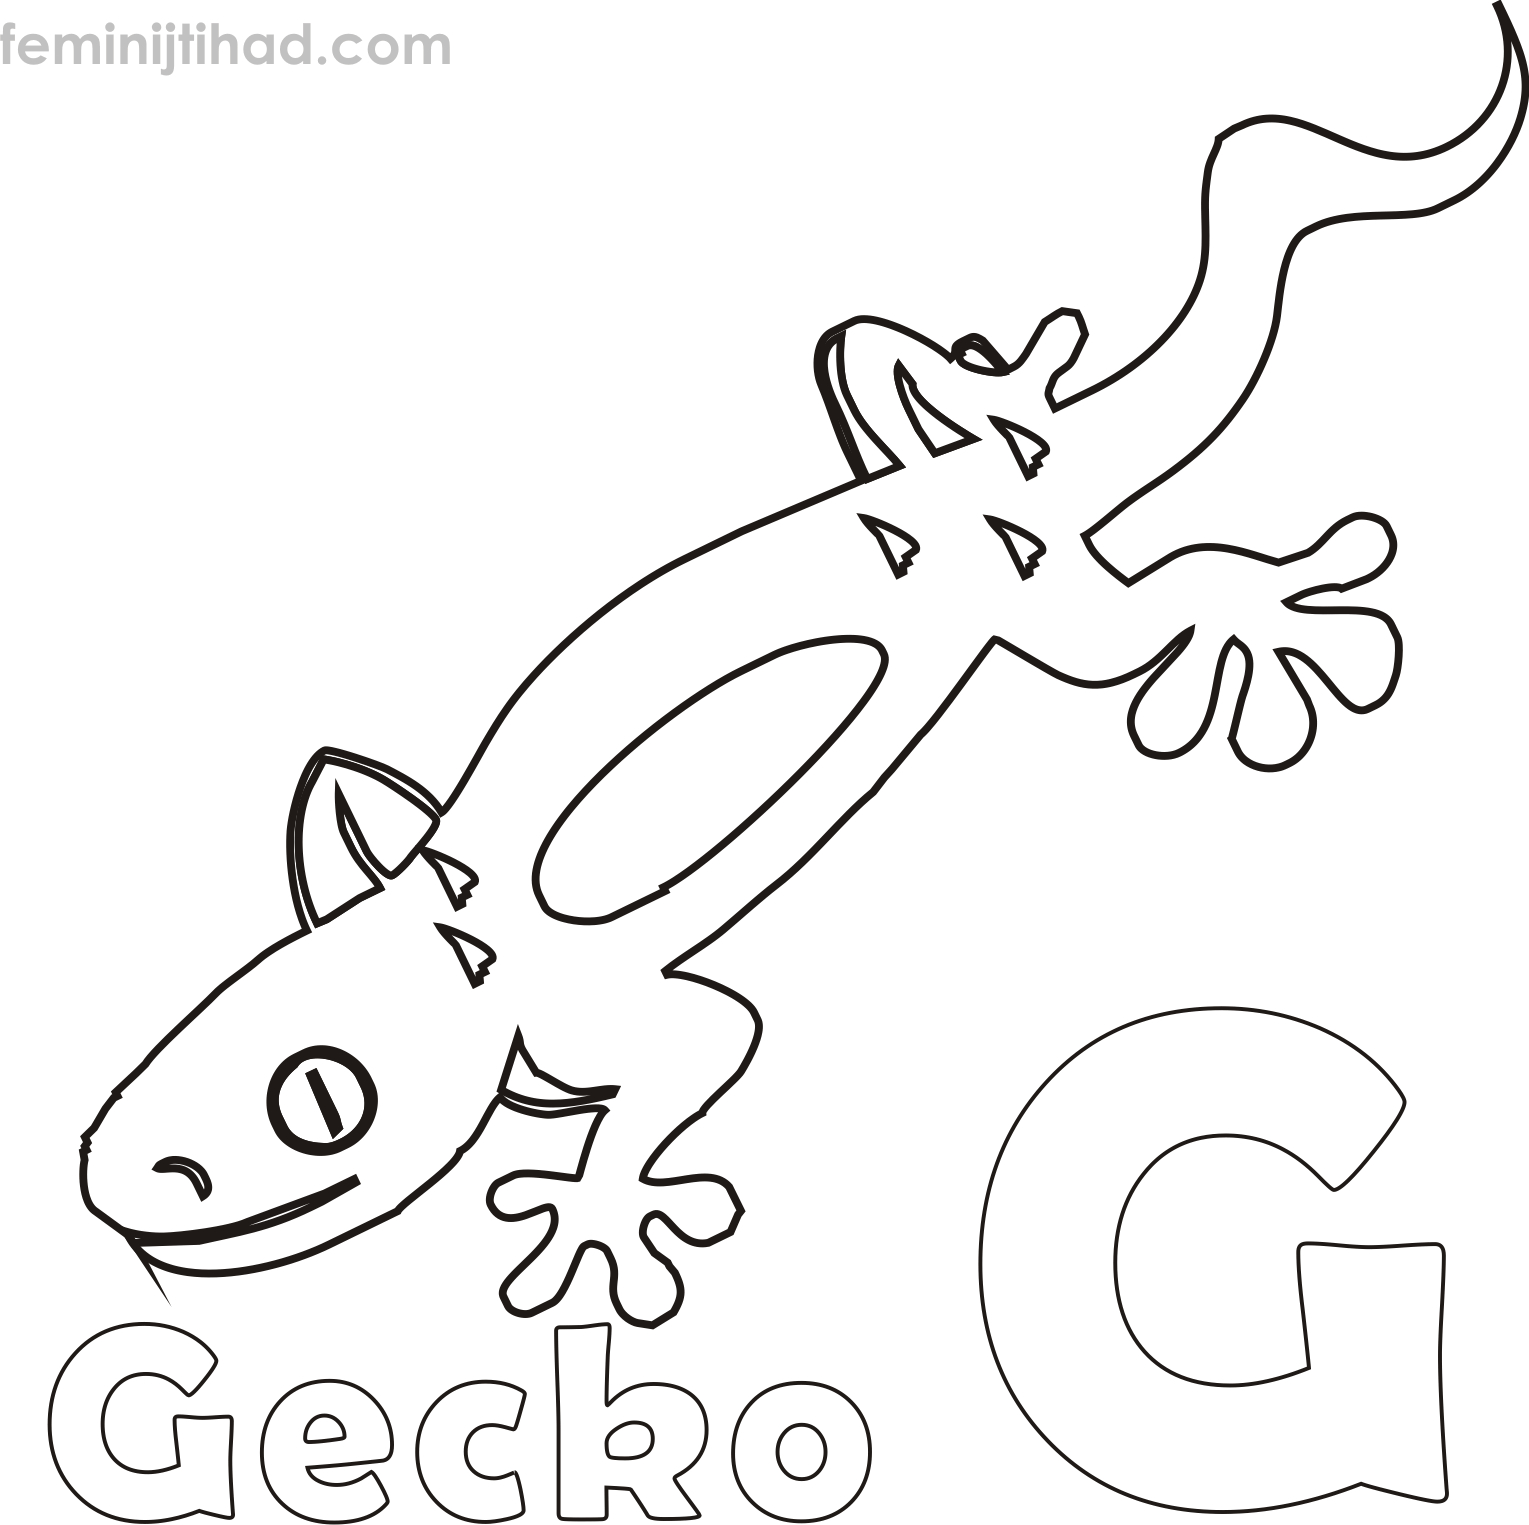 gecko coloring pages Download-Free Gecko Coloring Page 2-t